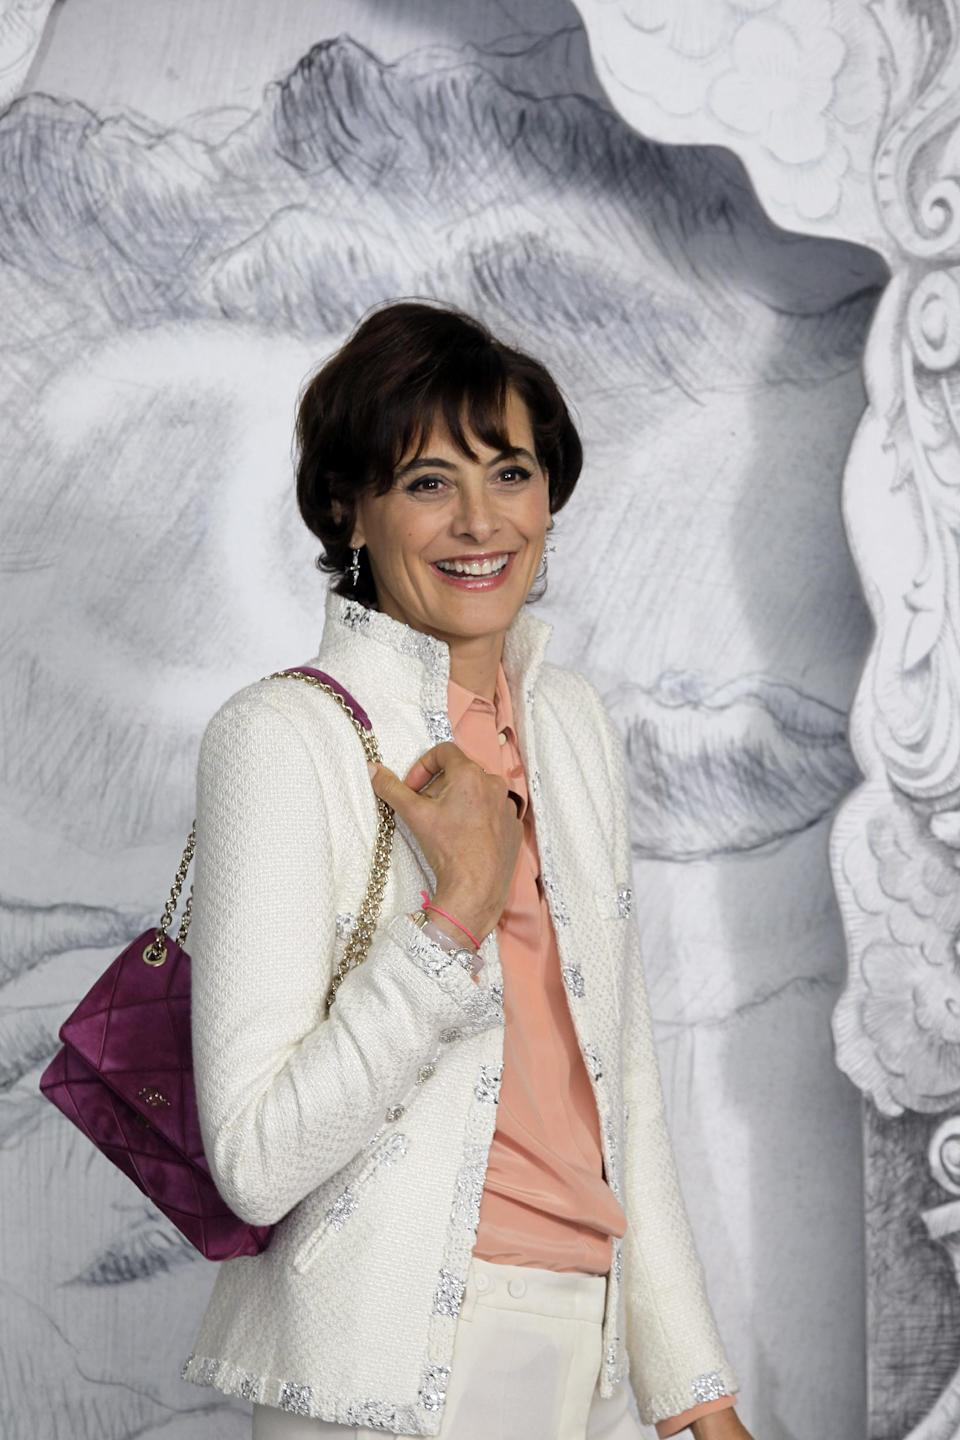 Ines de la Fressange, businesswoman and former model arrives for the show of Chanel by fashion designer Karl Lagerfeld during his Women's Fall Winter 2013 haute couture fashion collection in Paris, France, Tuesday, July 3, 2012. (AP Photo/Francois Mori)